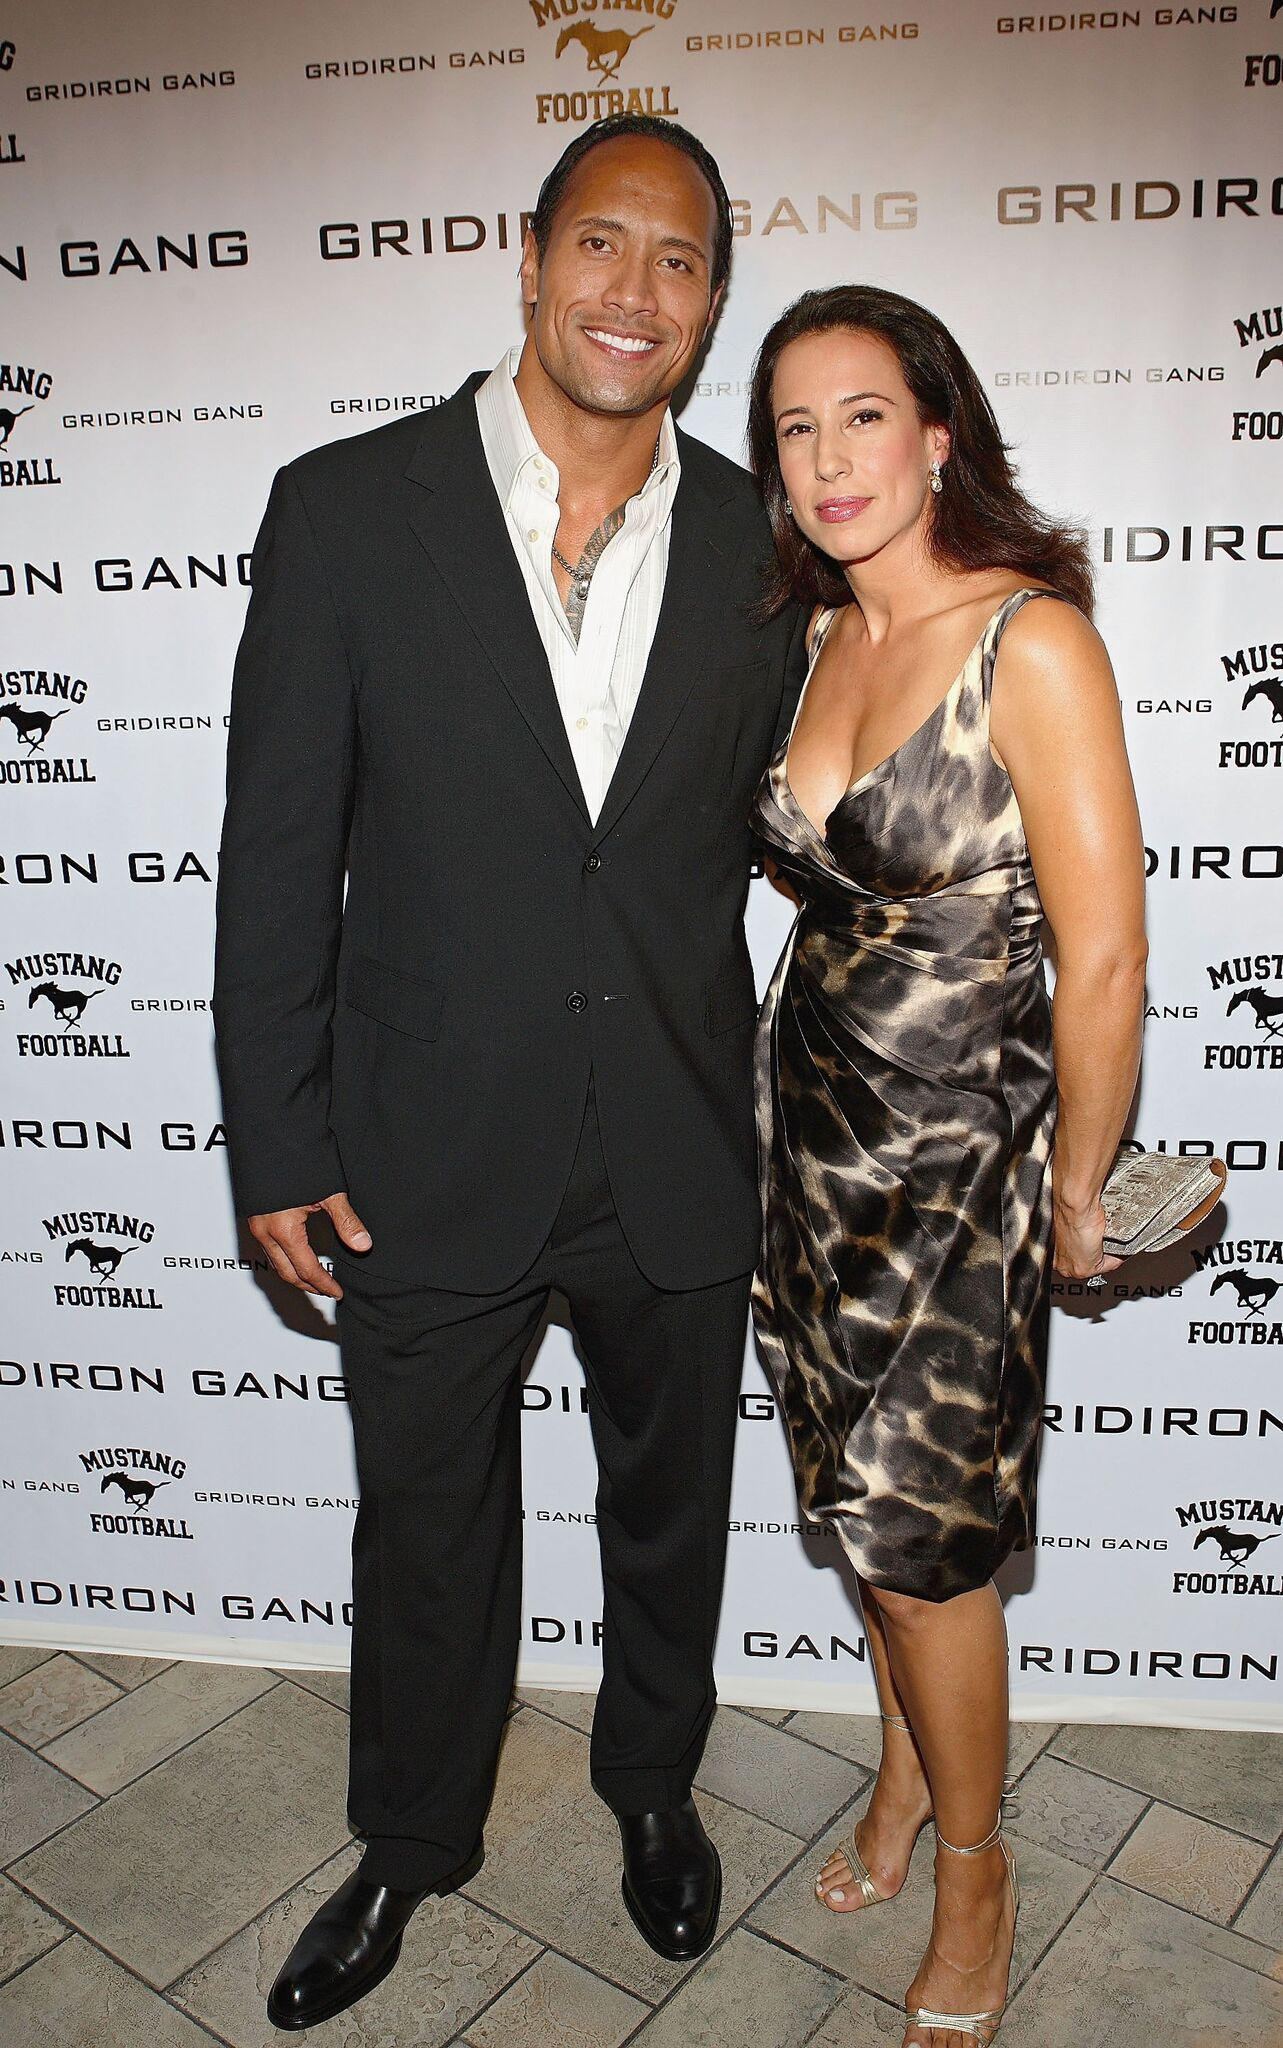 """Dwayne 'The Rock' Johnson (L) and his wife Dany Johnson (R) arrive at AMC Theatres in Sunset Place for the premiere of his new movie """"Gridiron Gang""""  